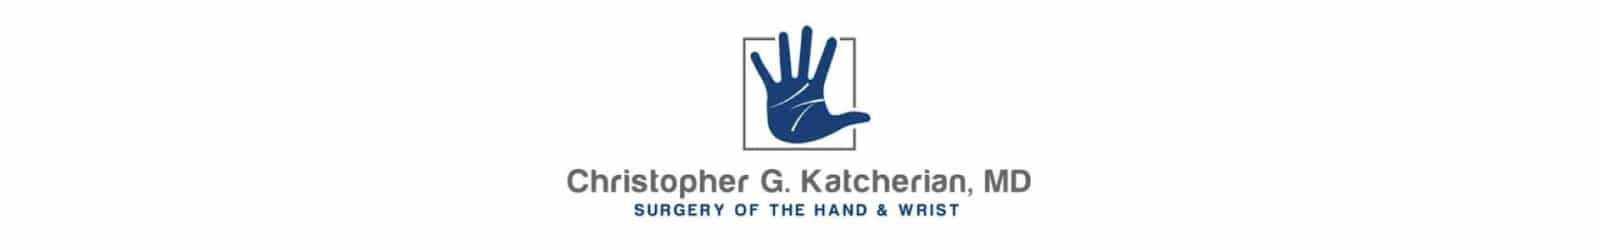 Christopher Kalcherian MD logo designed by O360